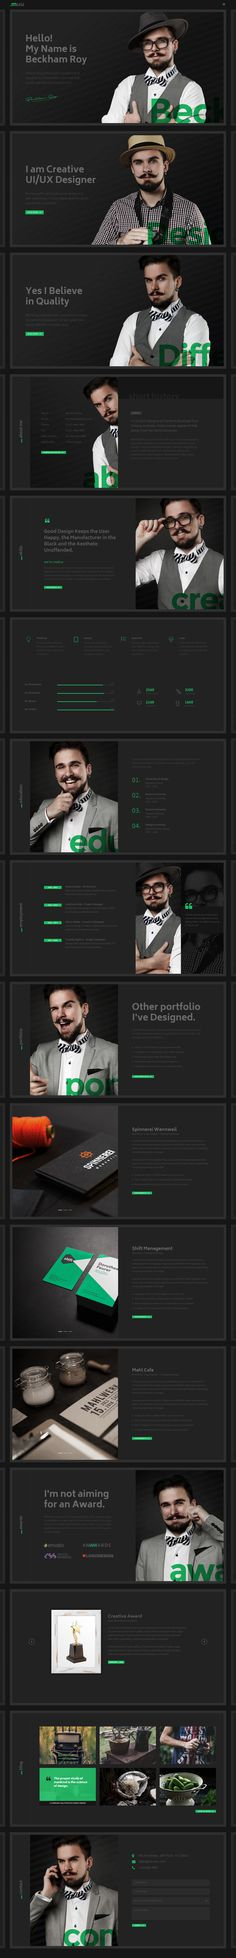 MUU - A creative, unique and interactive personal #resume and #portfolio #HTML5 and #Bootstrap Template - Black skin. - https://goo.gl/wNT8u